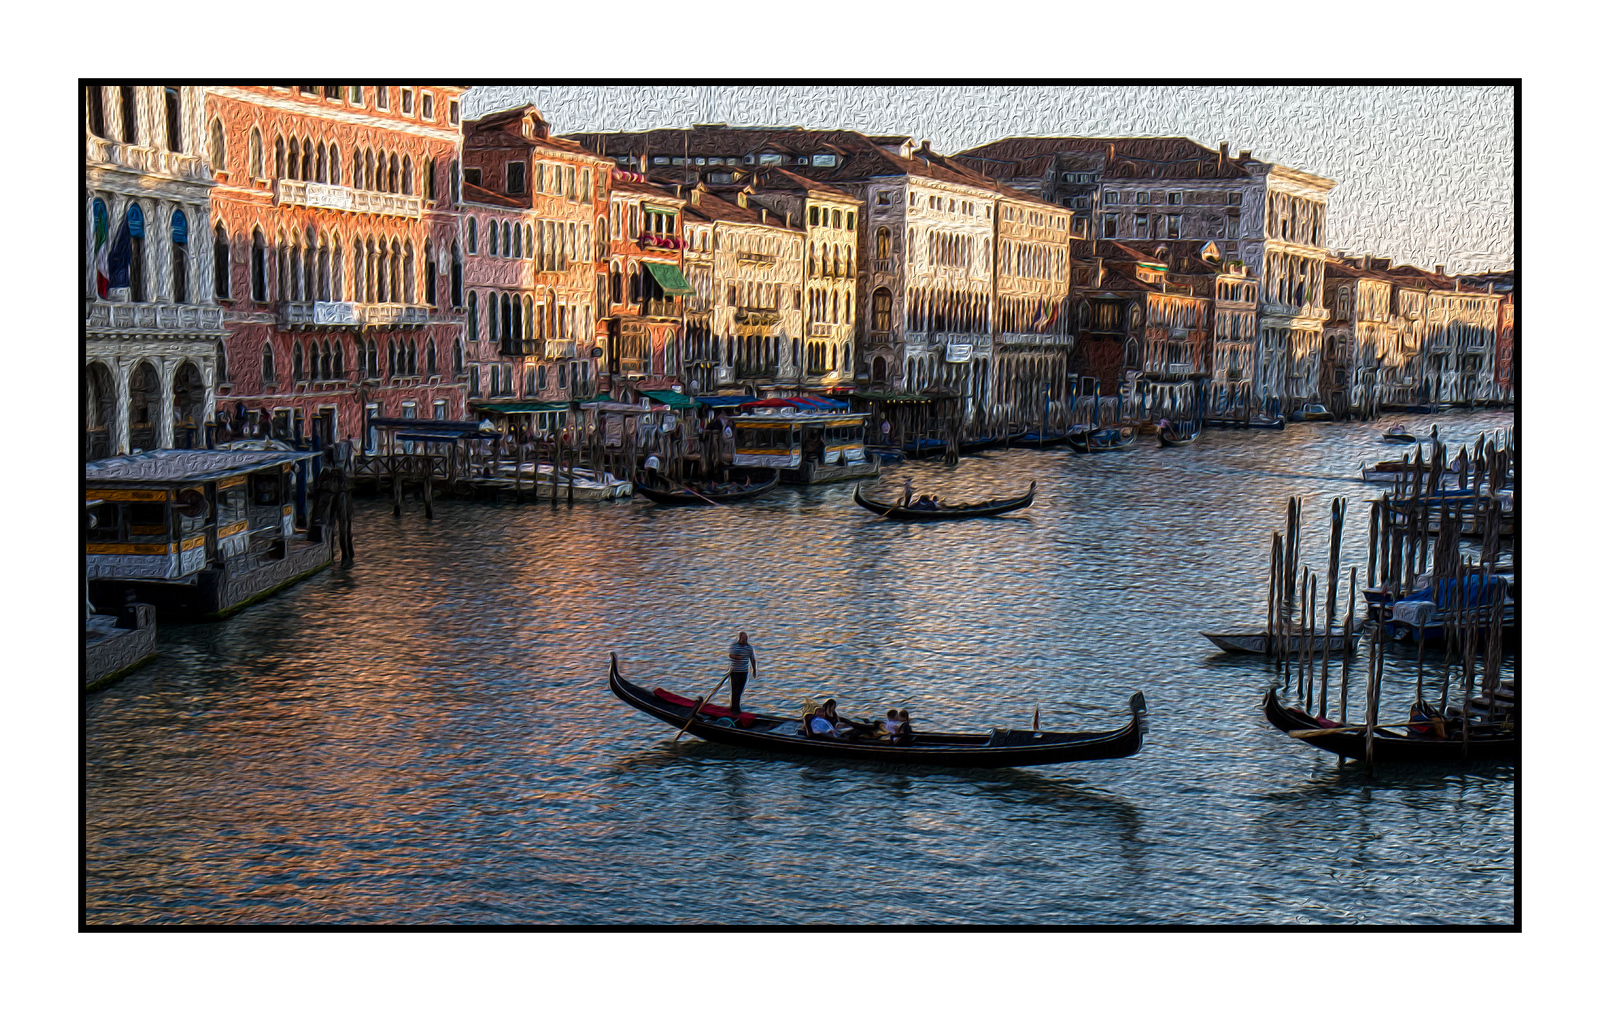 IMAGE: https://photos.smugmug.com/Travel/Architecture/Venice/i-HNh6KR2/0/26b2f19f/X3/Grand%20Canal%20oill%2001-X3.jpg